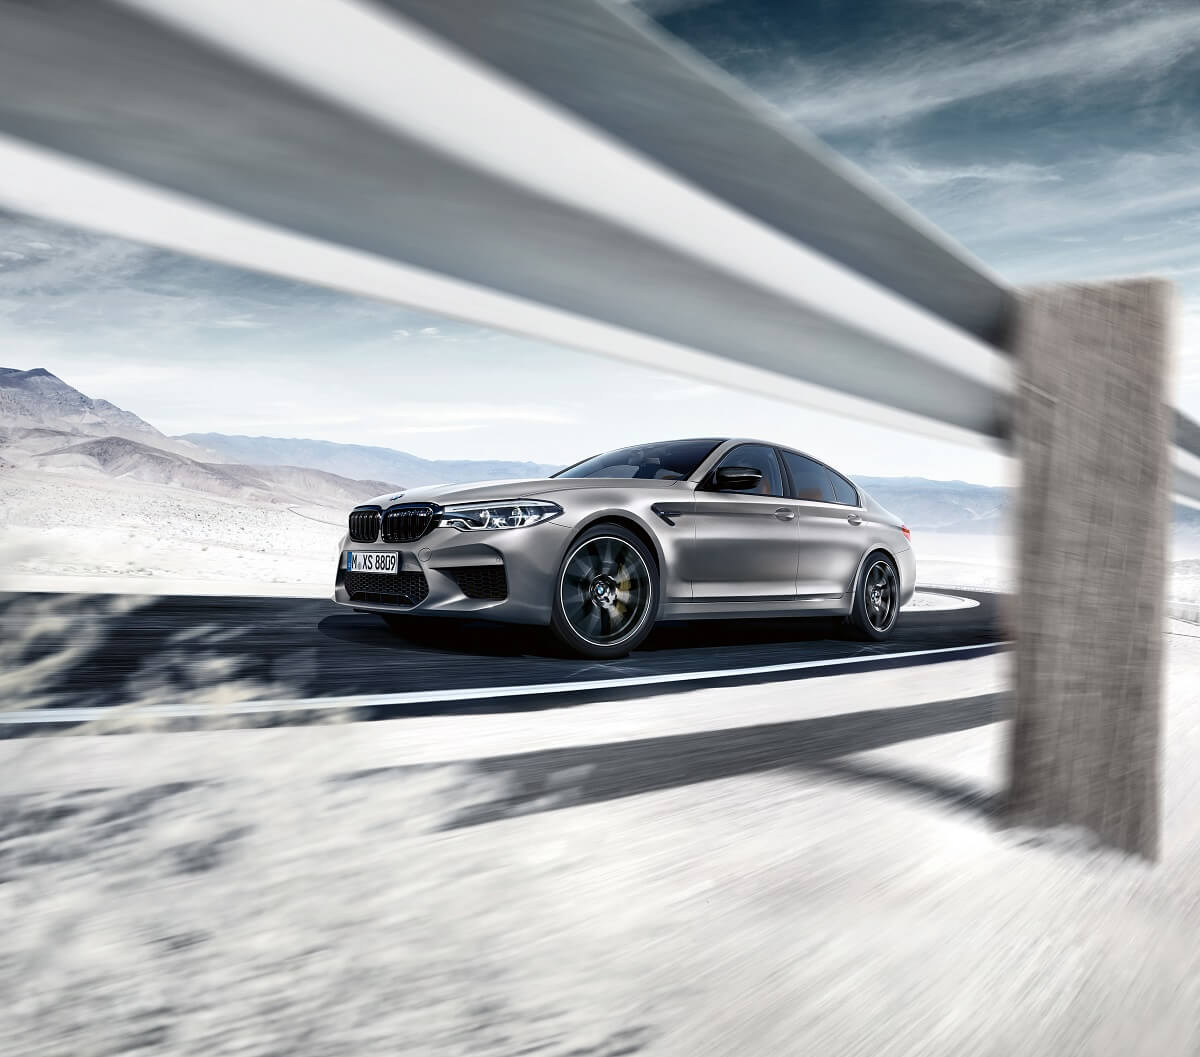 P90300395_highRes_the-new-bmw-m5-compe.jpg